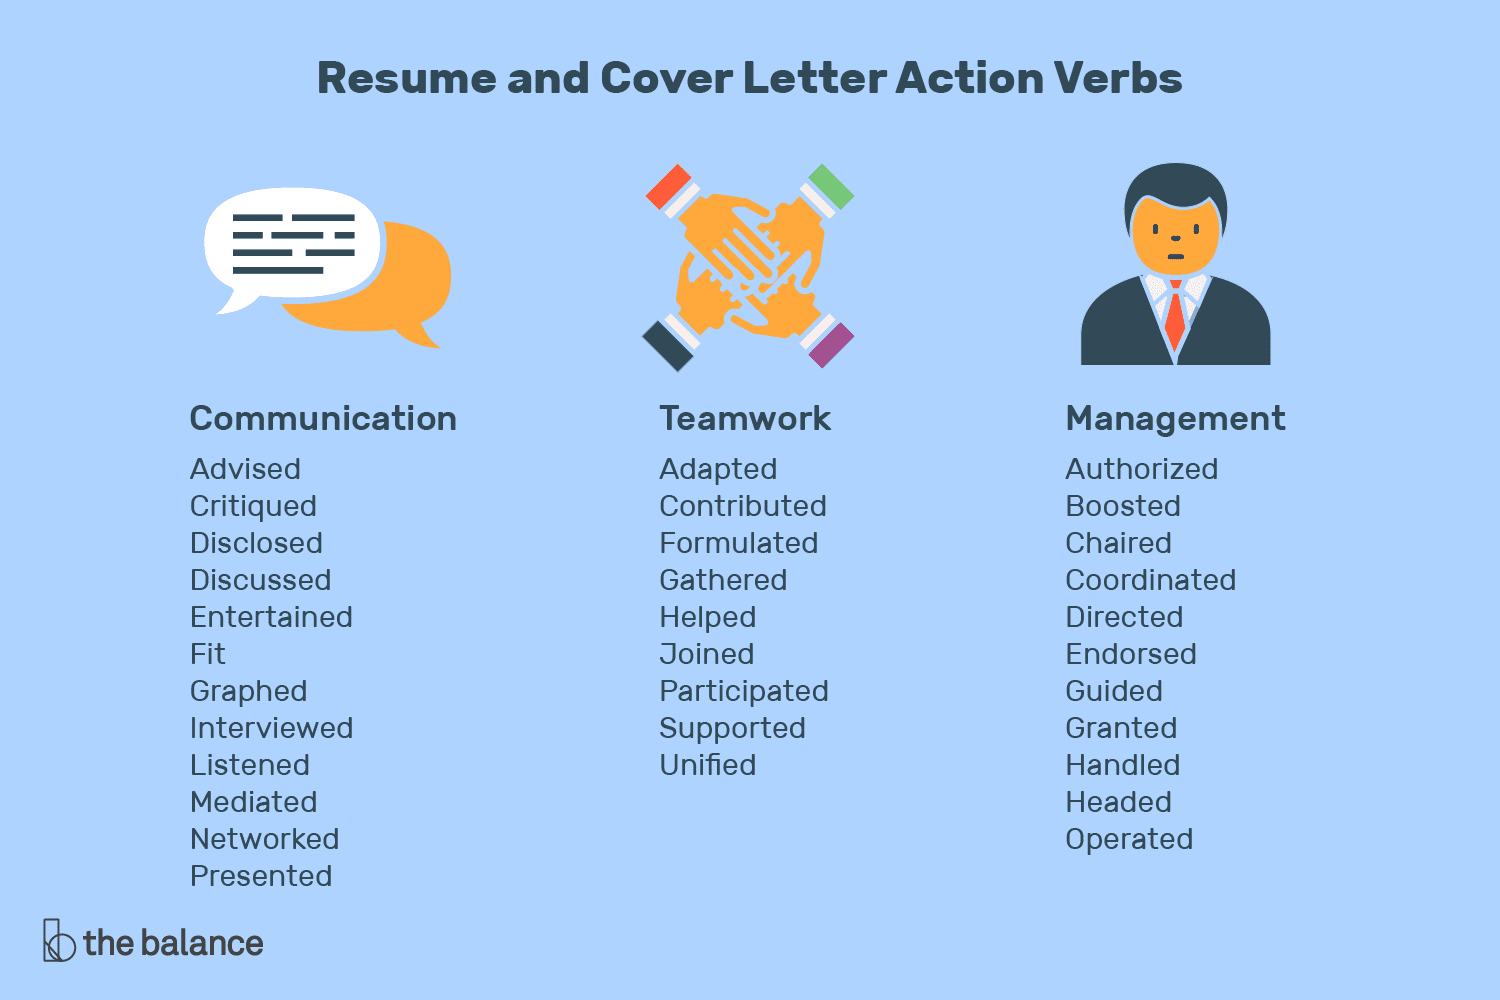 Ut Sample Resume - Resume and Cover Letter Action Verbs